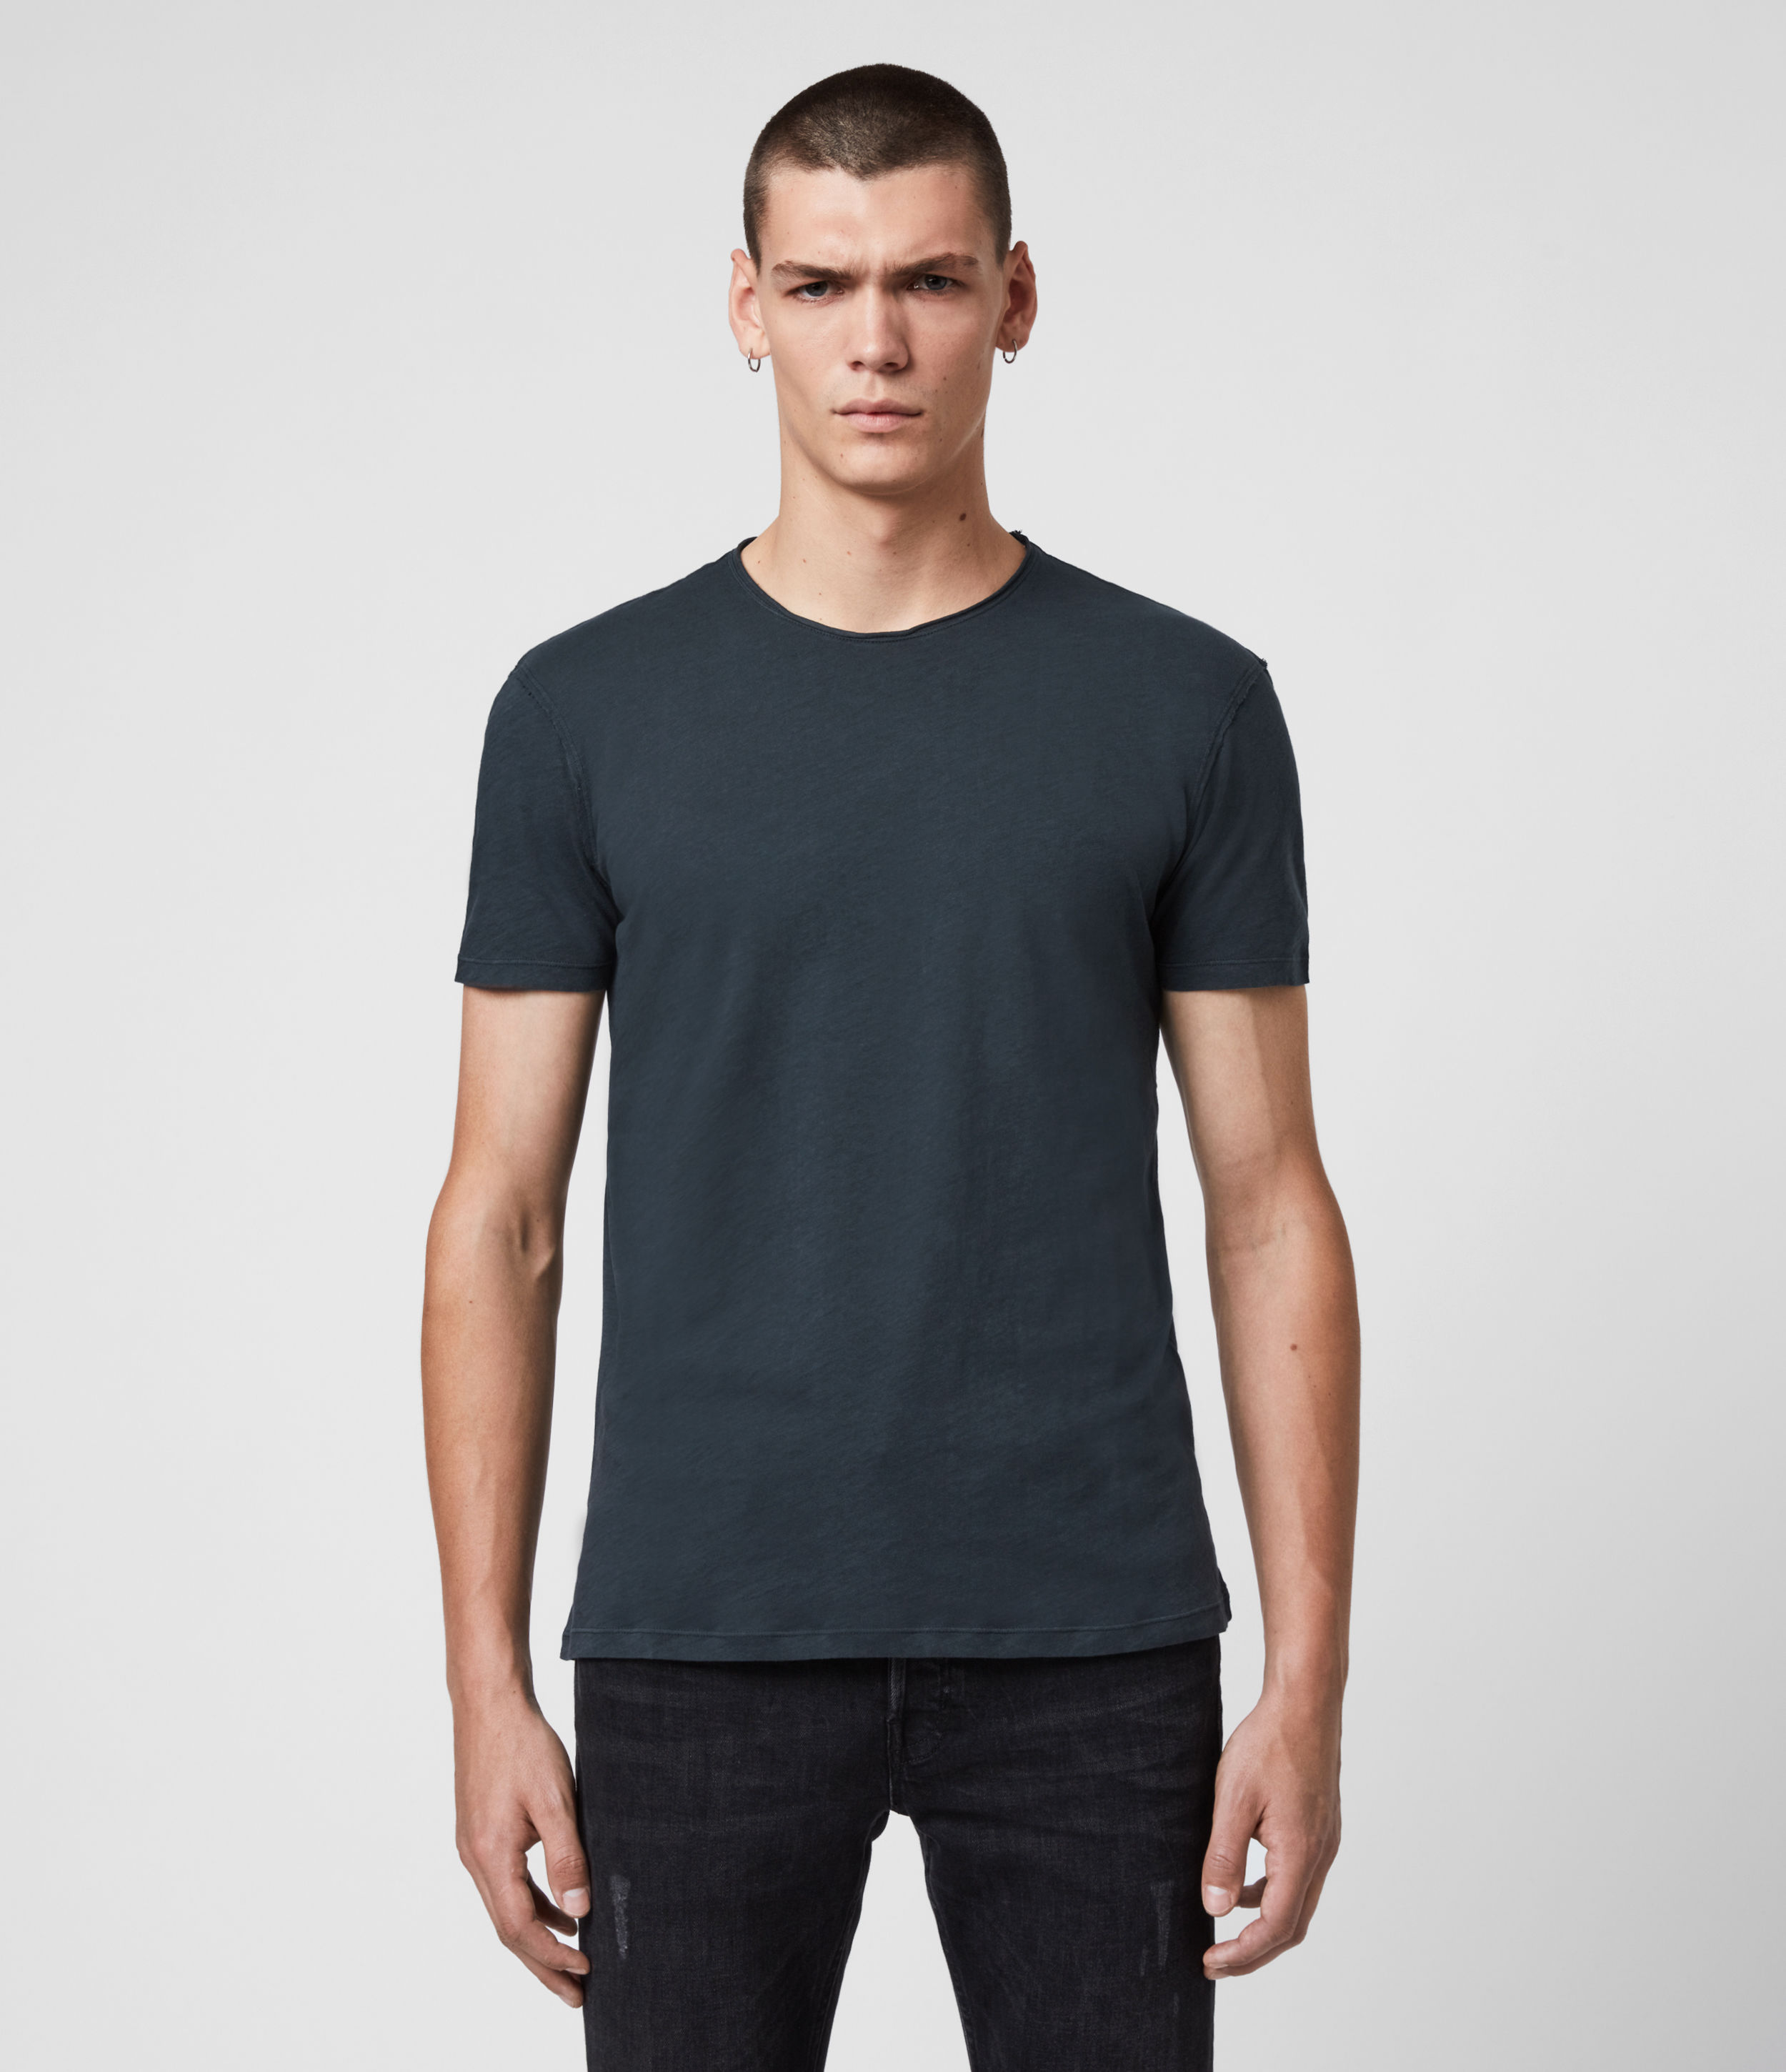 AllSaints Men's Cotton Regular Fit Figure Crew T-Shirt, Blue, Size: XS